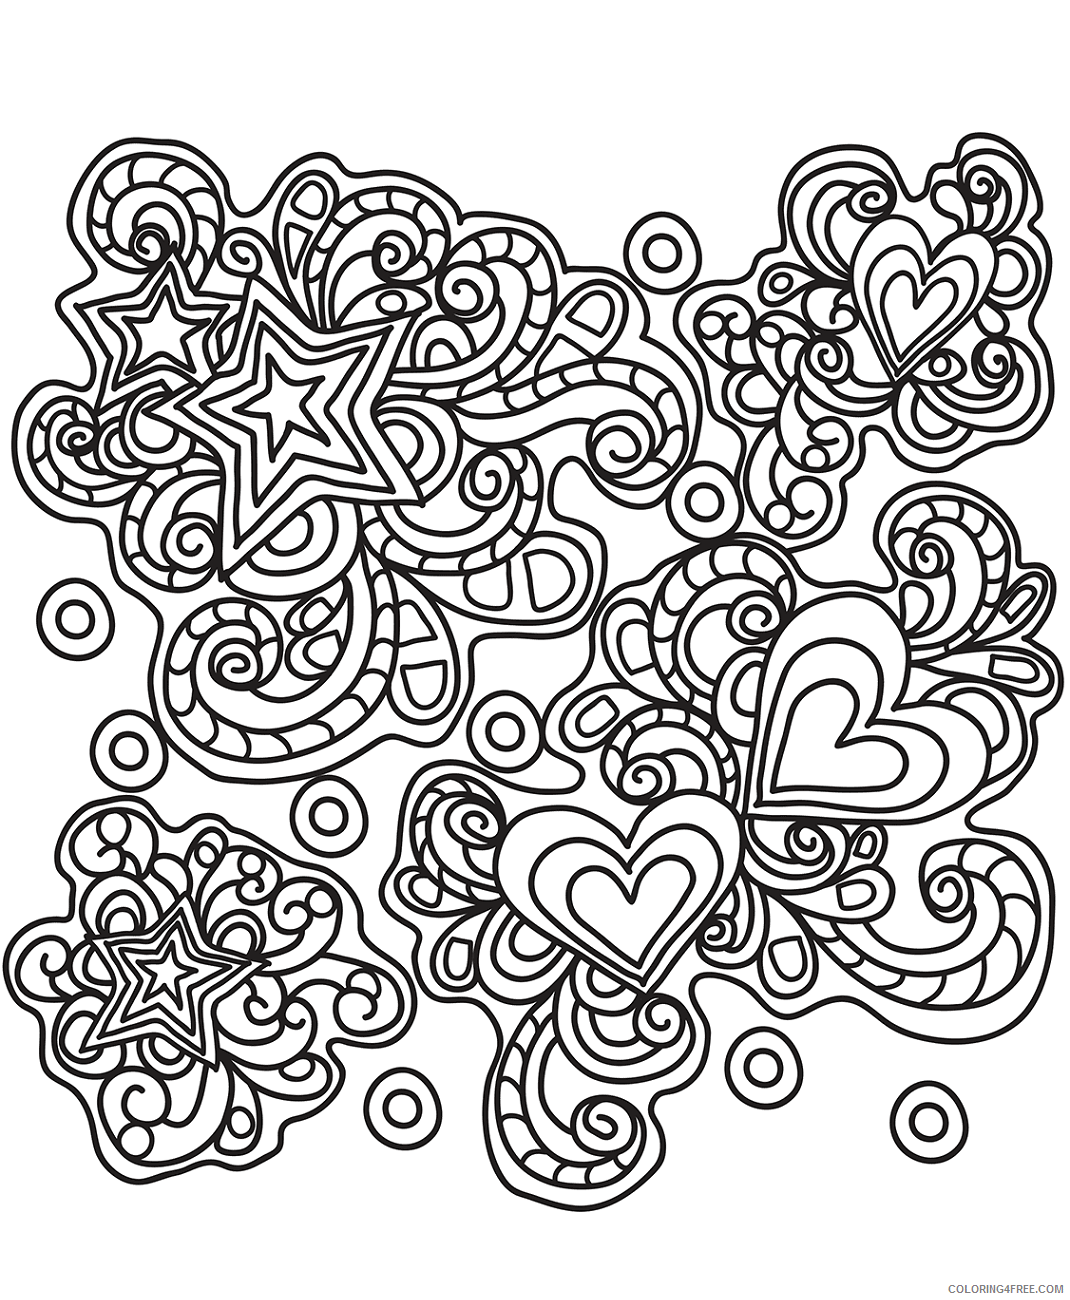 Heart Doodle Coloring Pages hearts_doodle_art Printable 2021 3228 Coloring4free